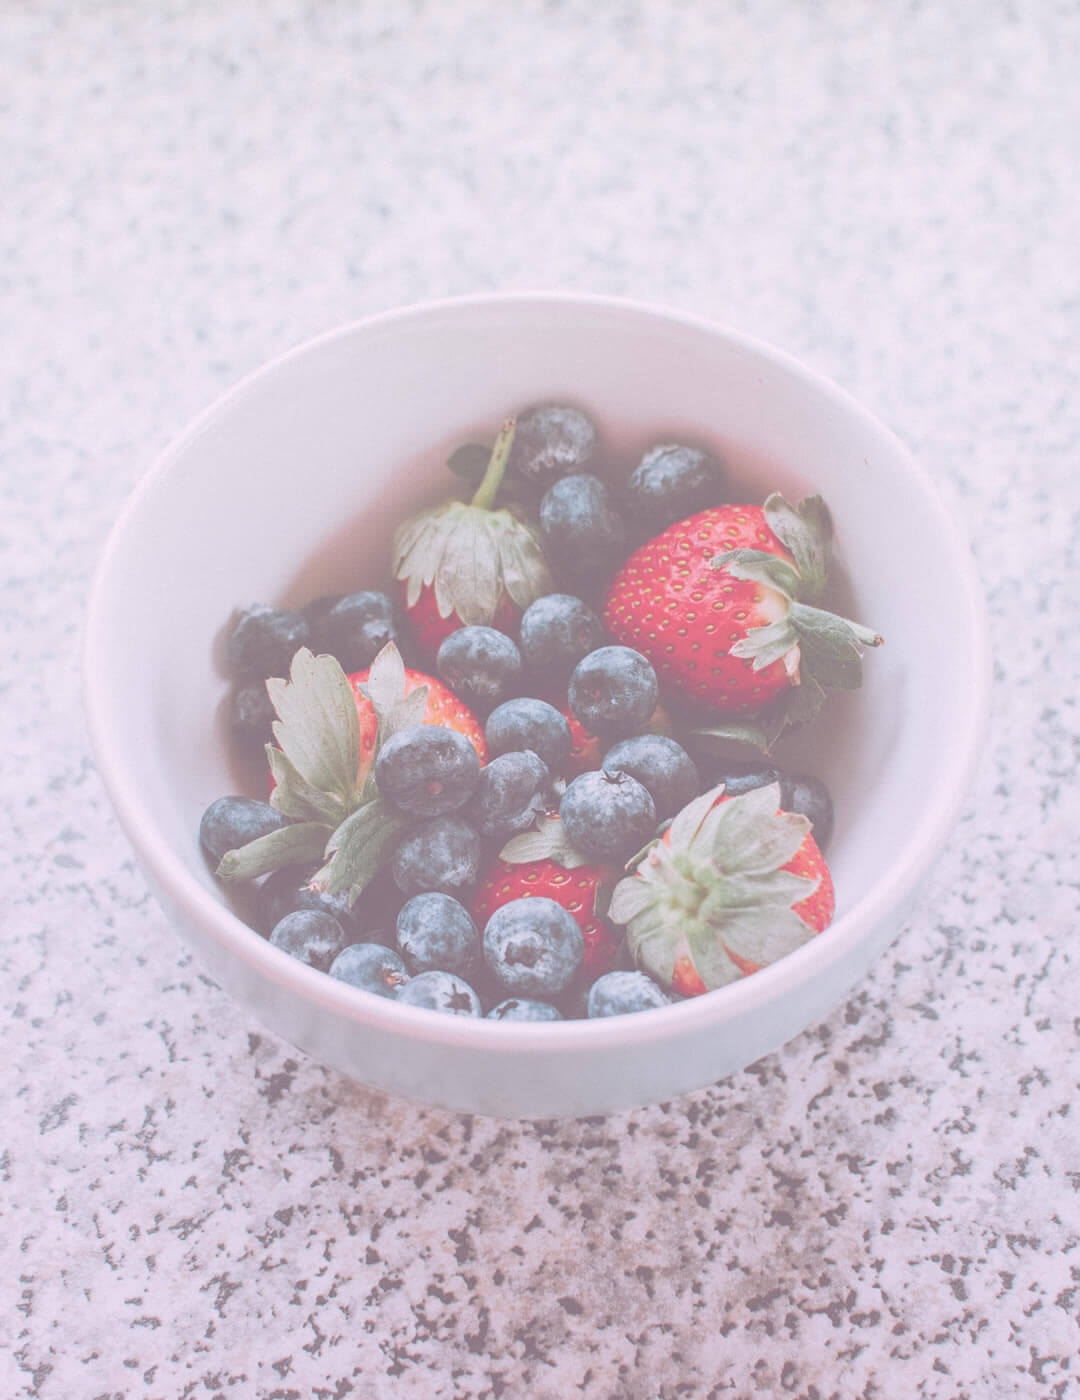 blueberries and strawberries as one of the best foods for mental health